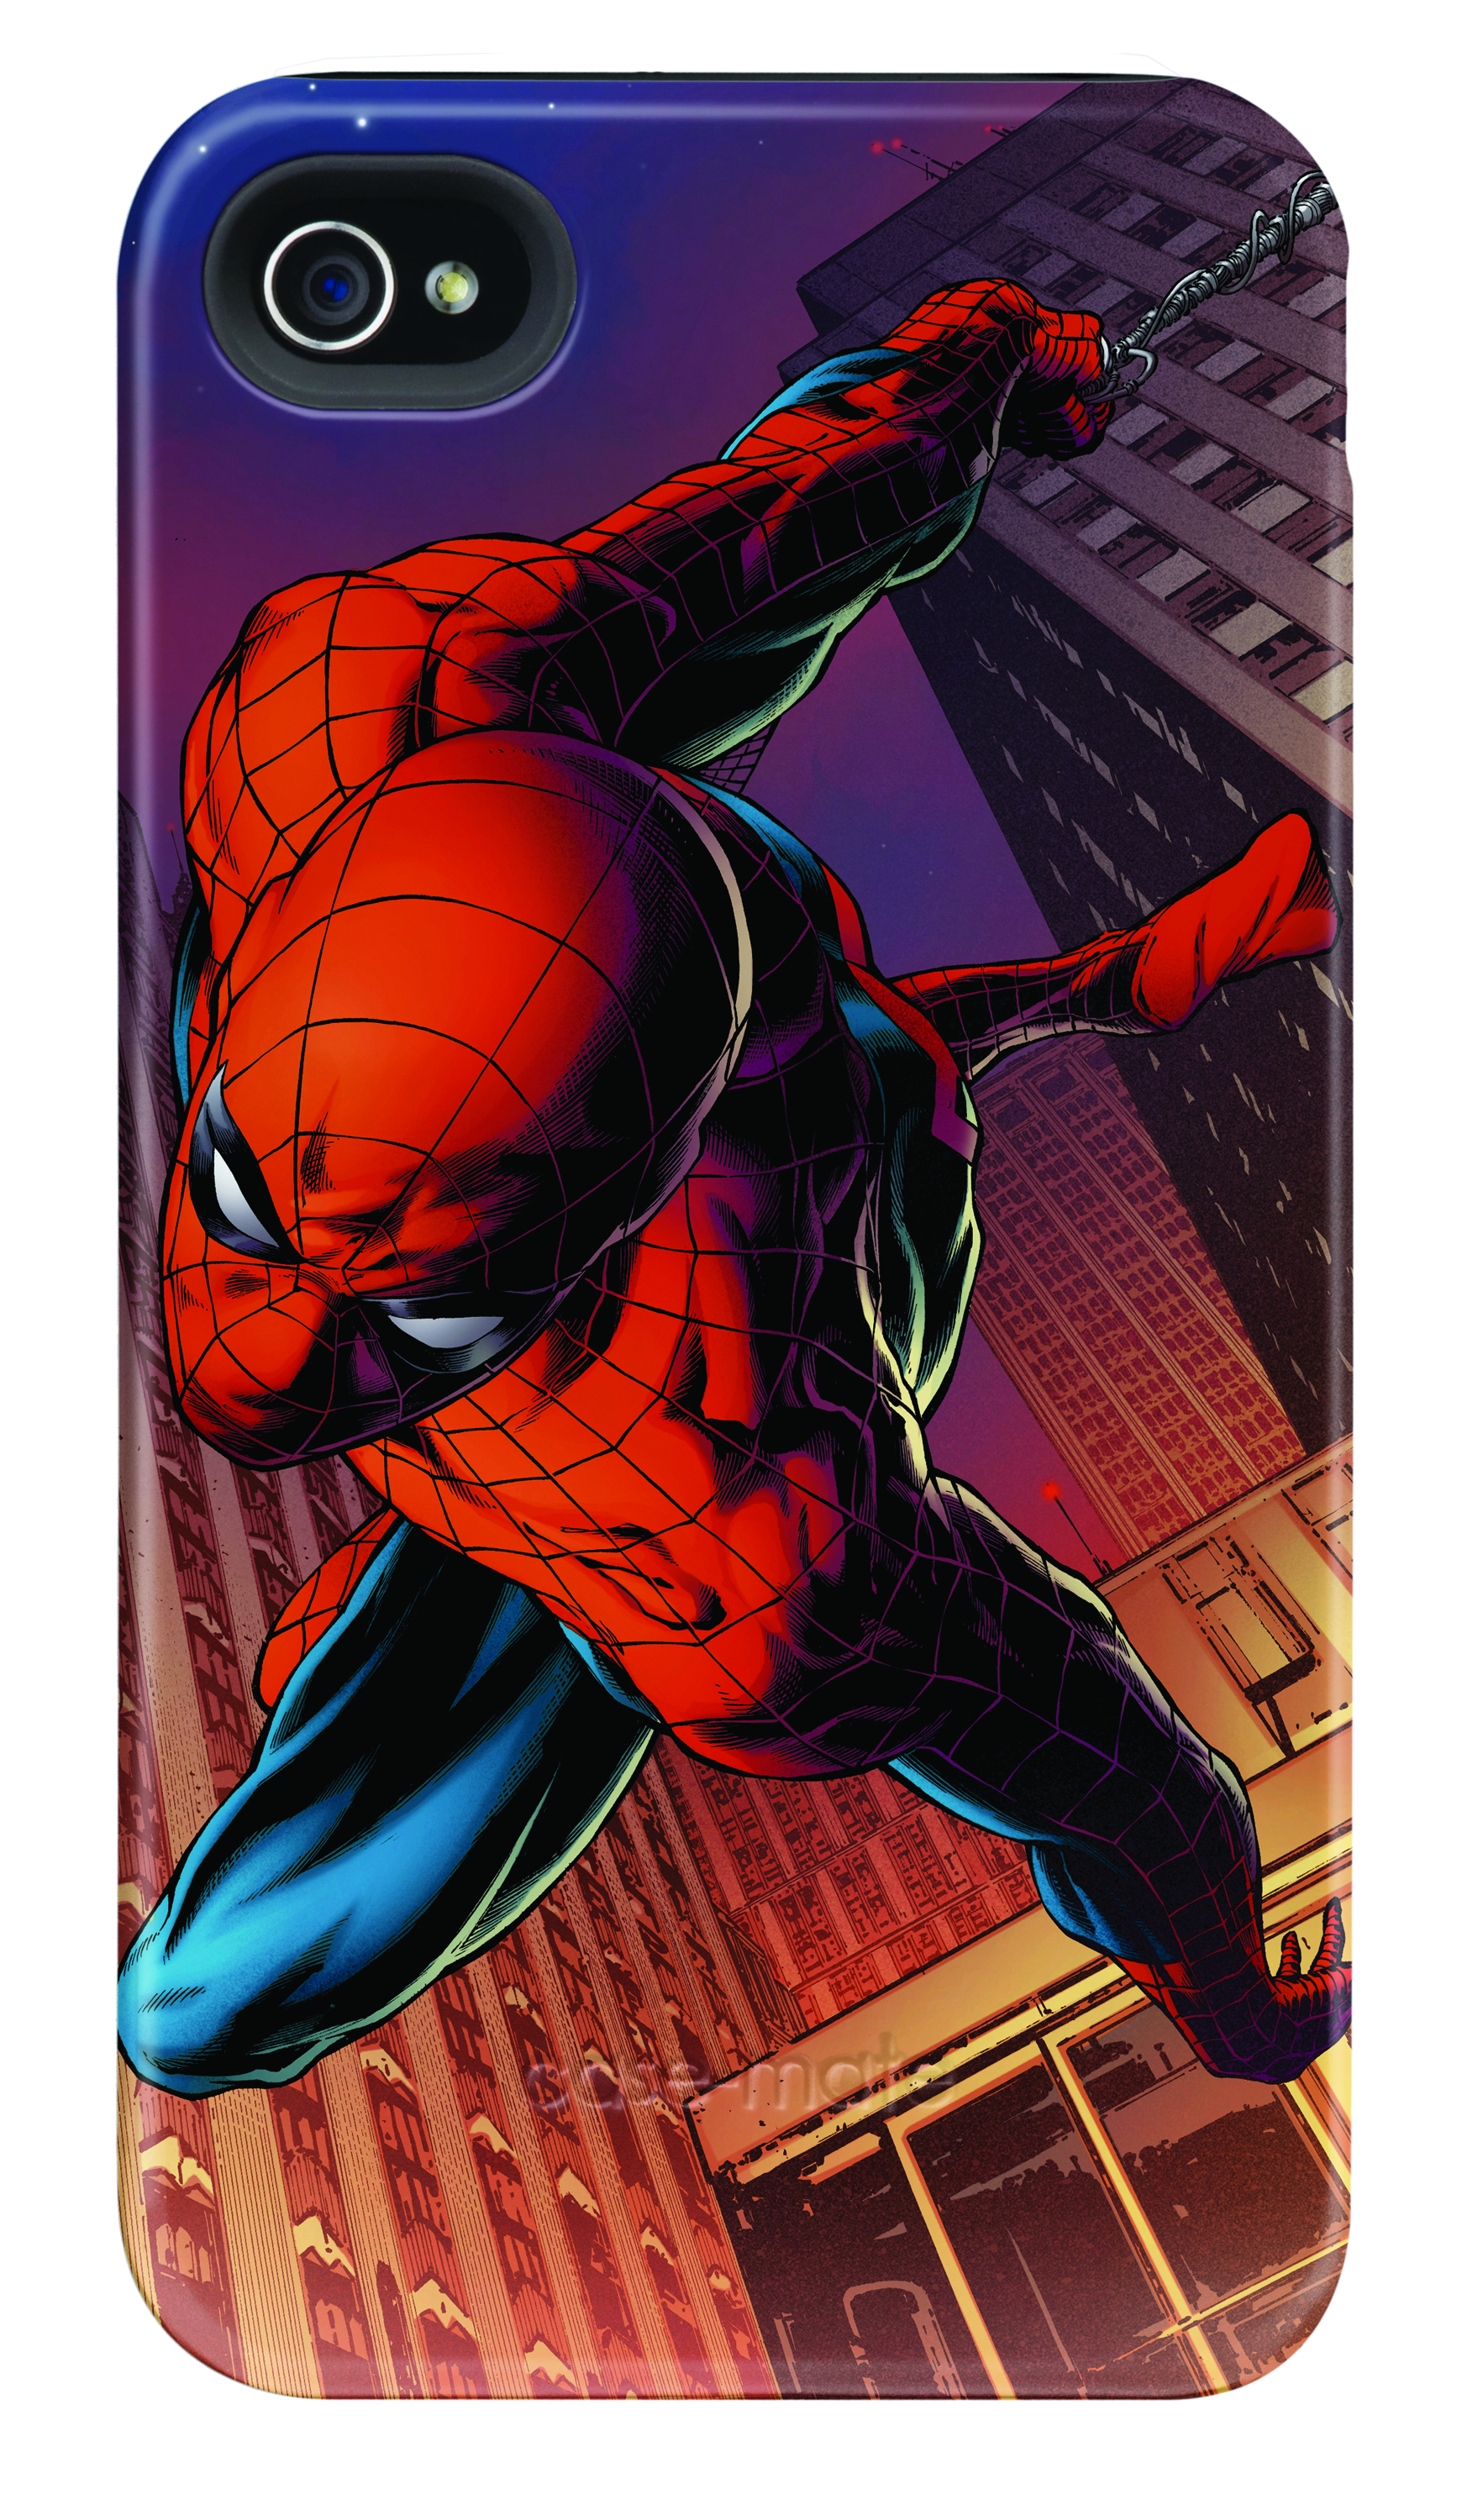 SPIDER-MAN DIVE IPHONE 4/4S BARELY THERE CASE